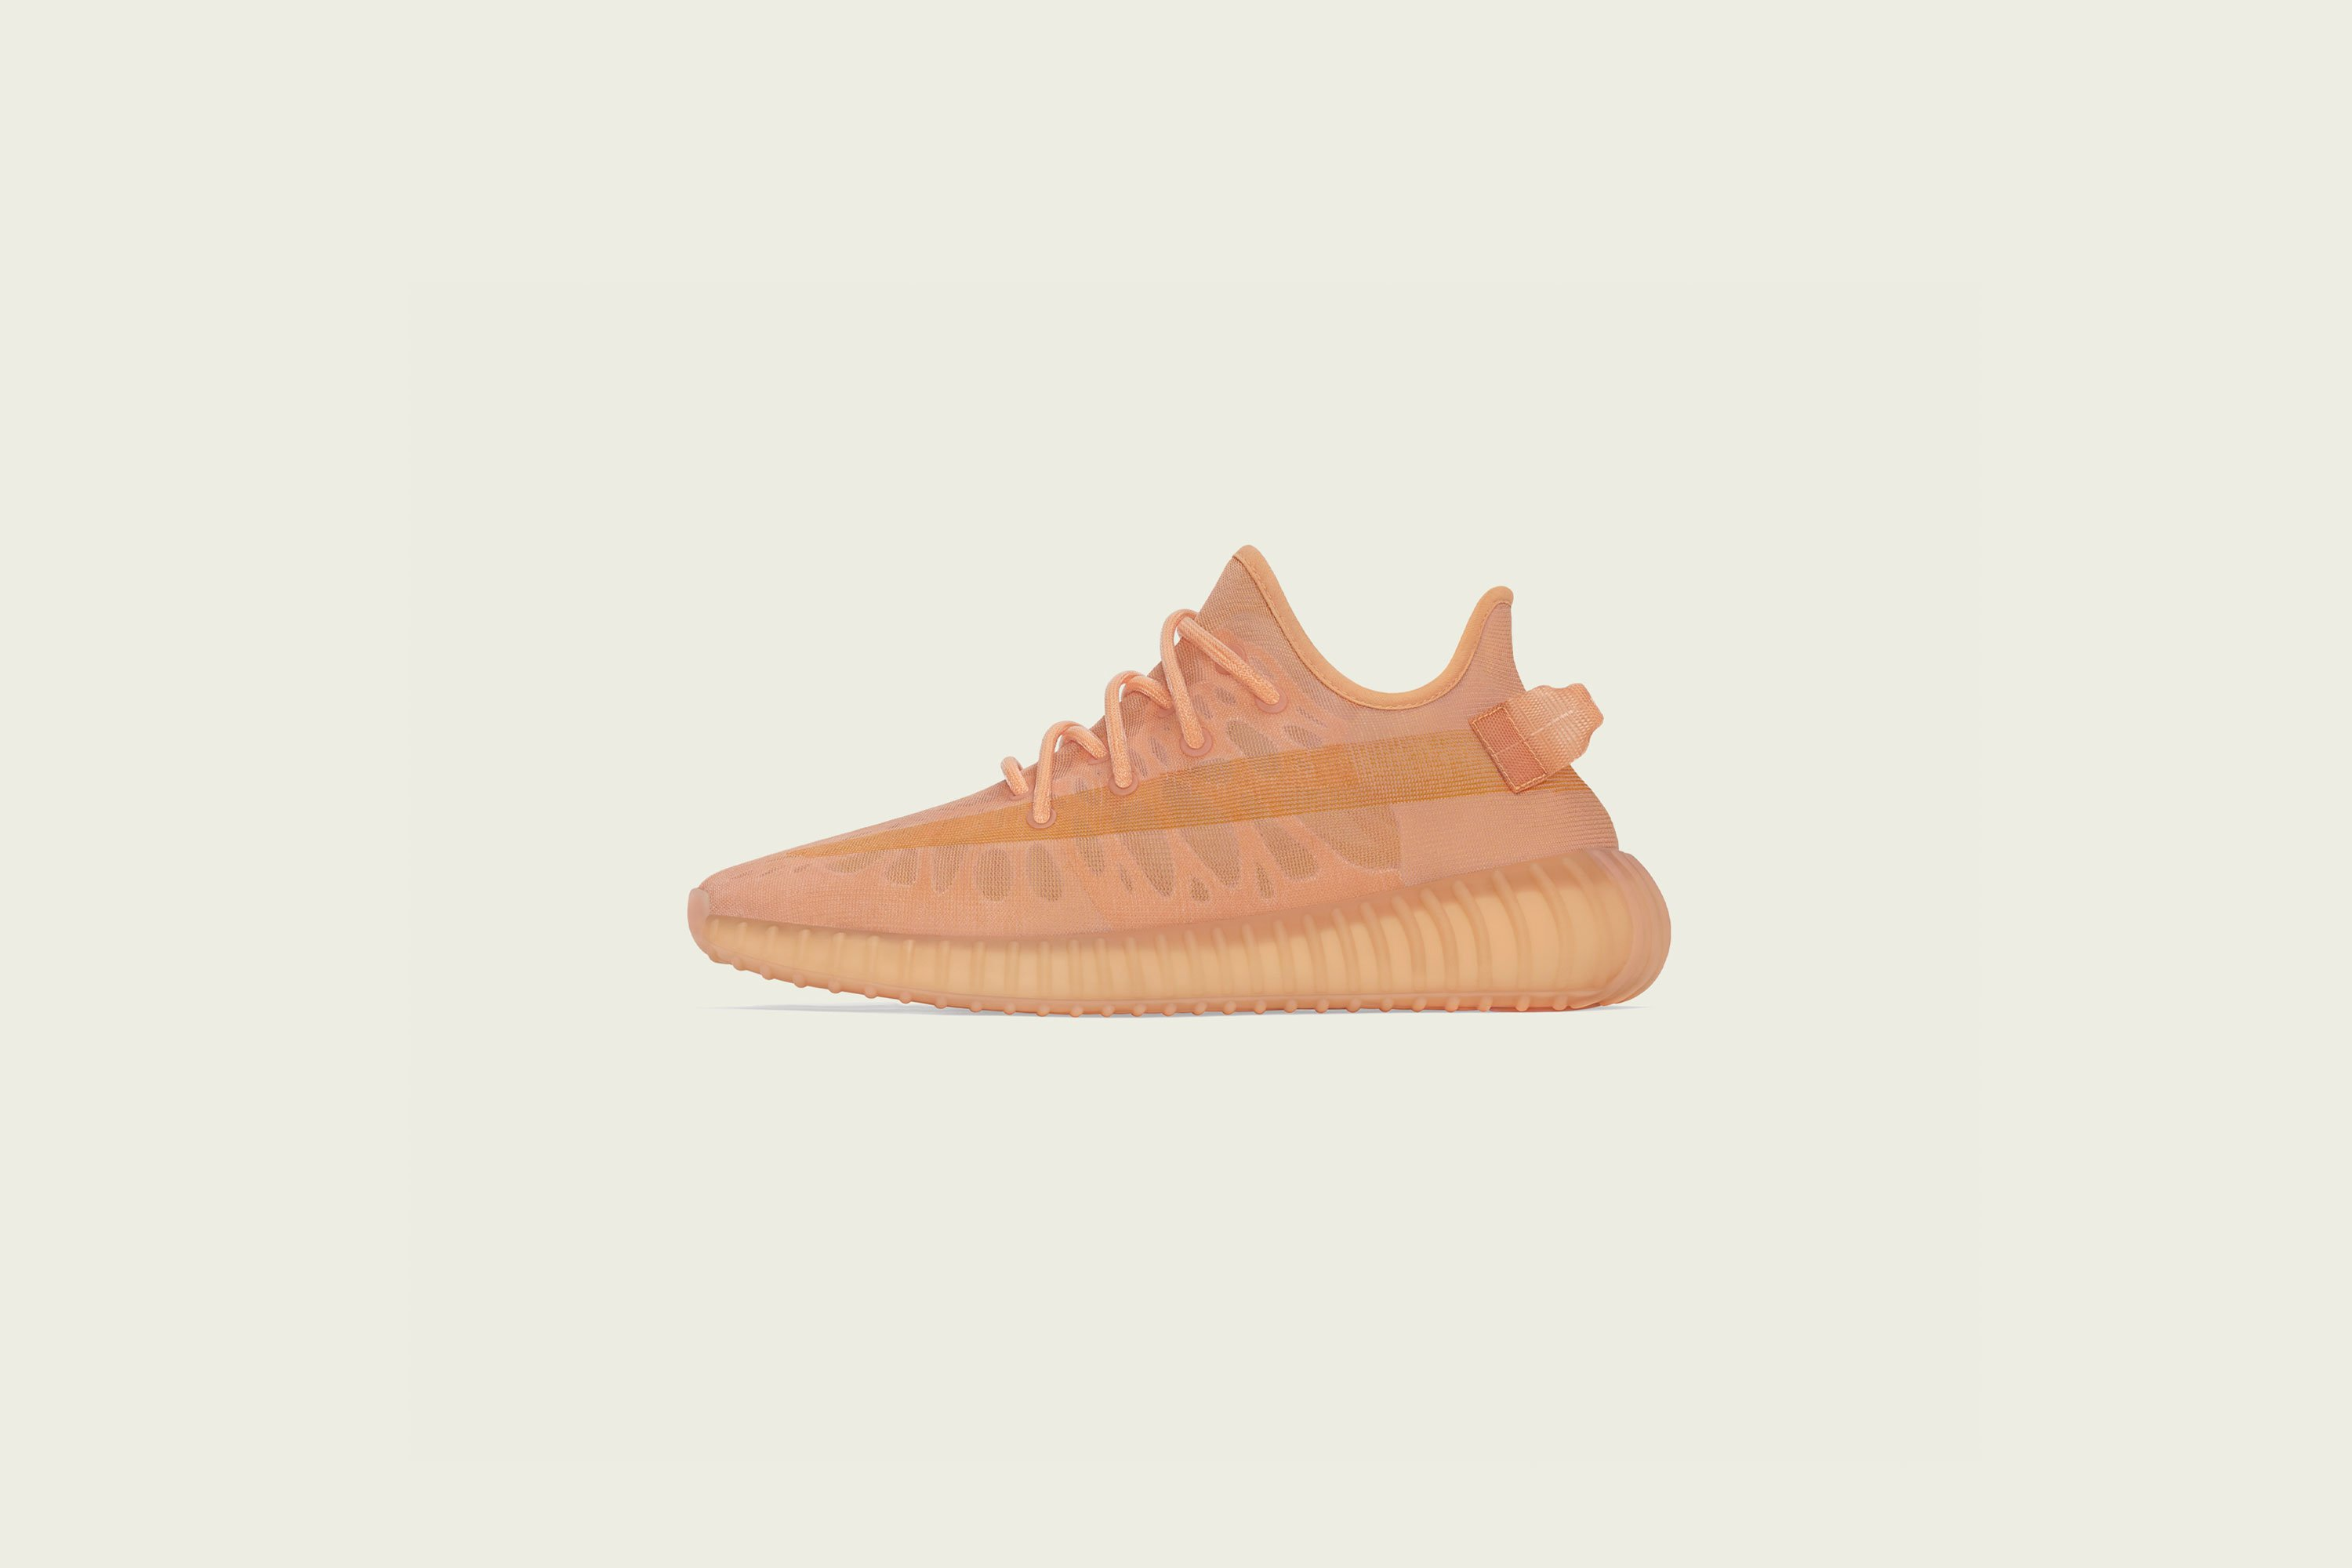 adidas - Yeezy Boost 350v2 - Mono Clay - Up There